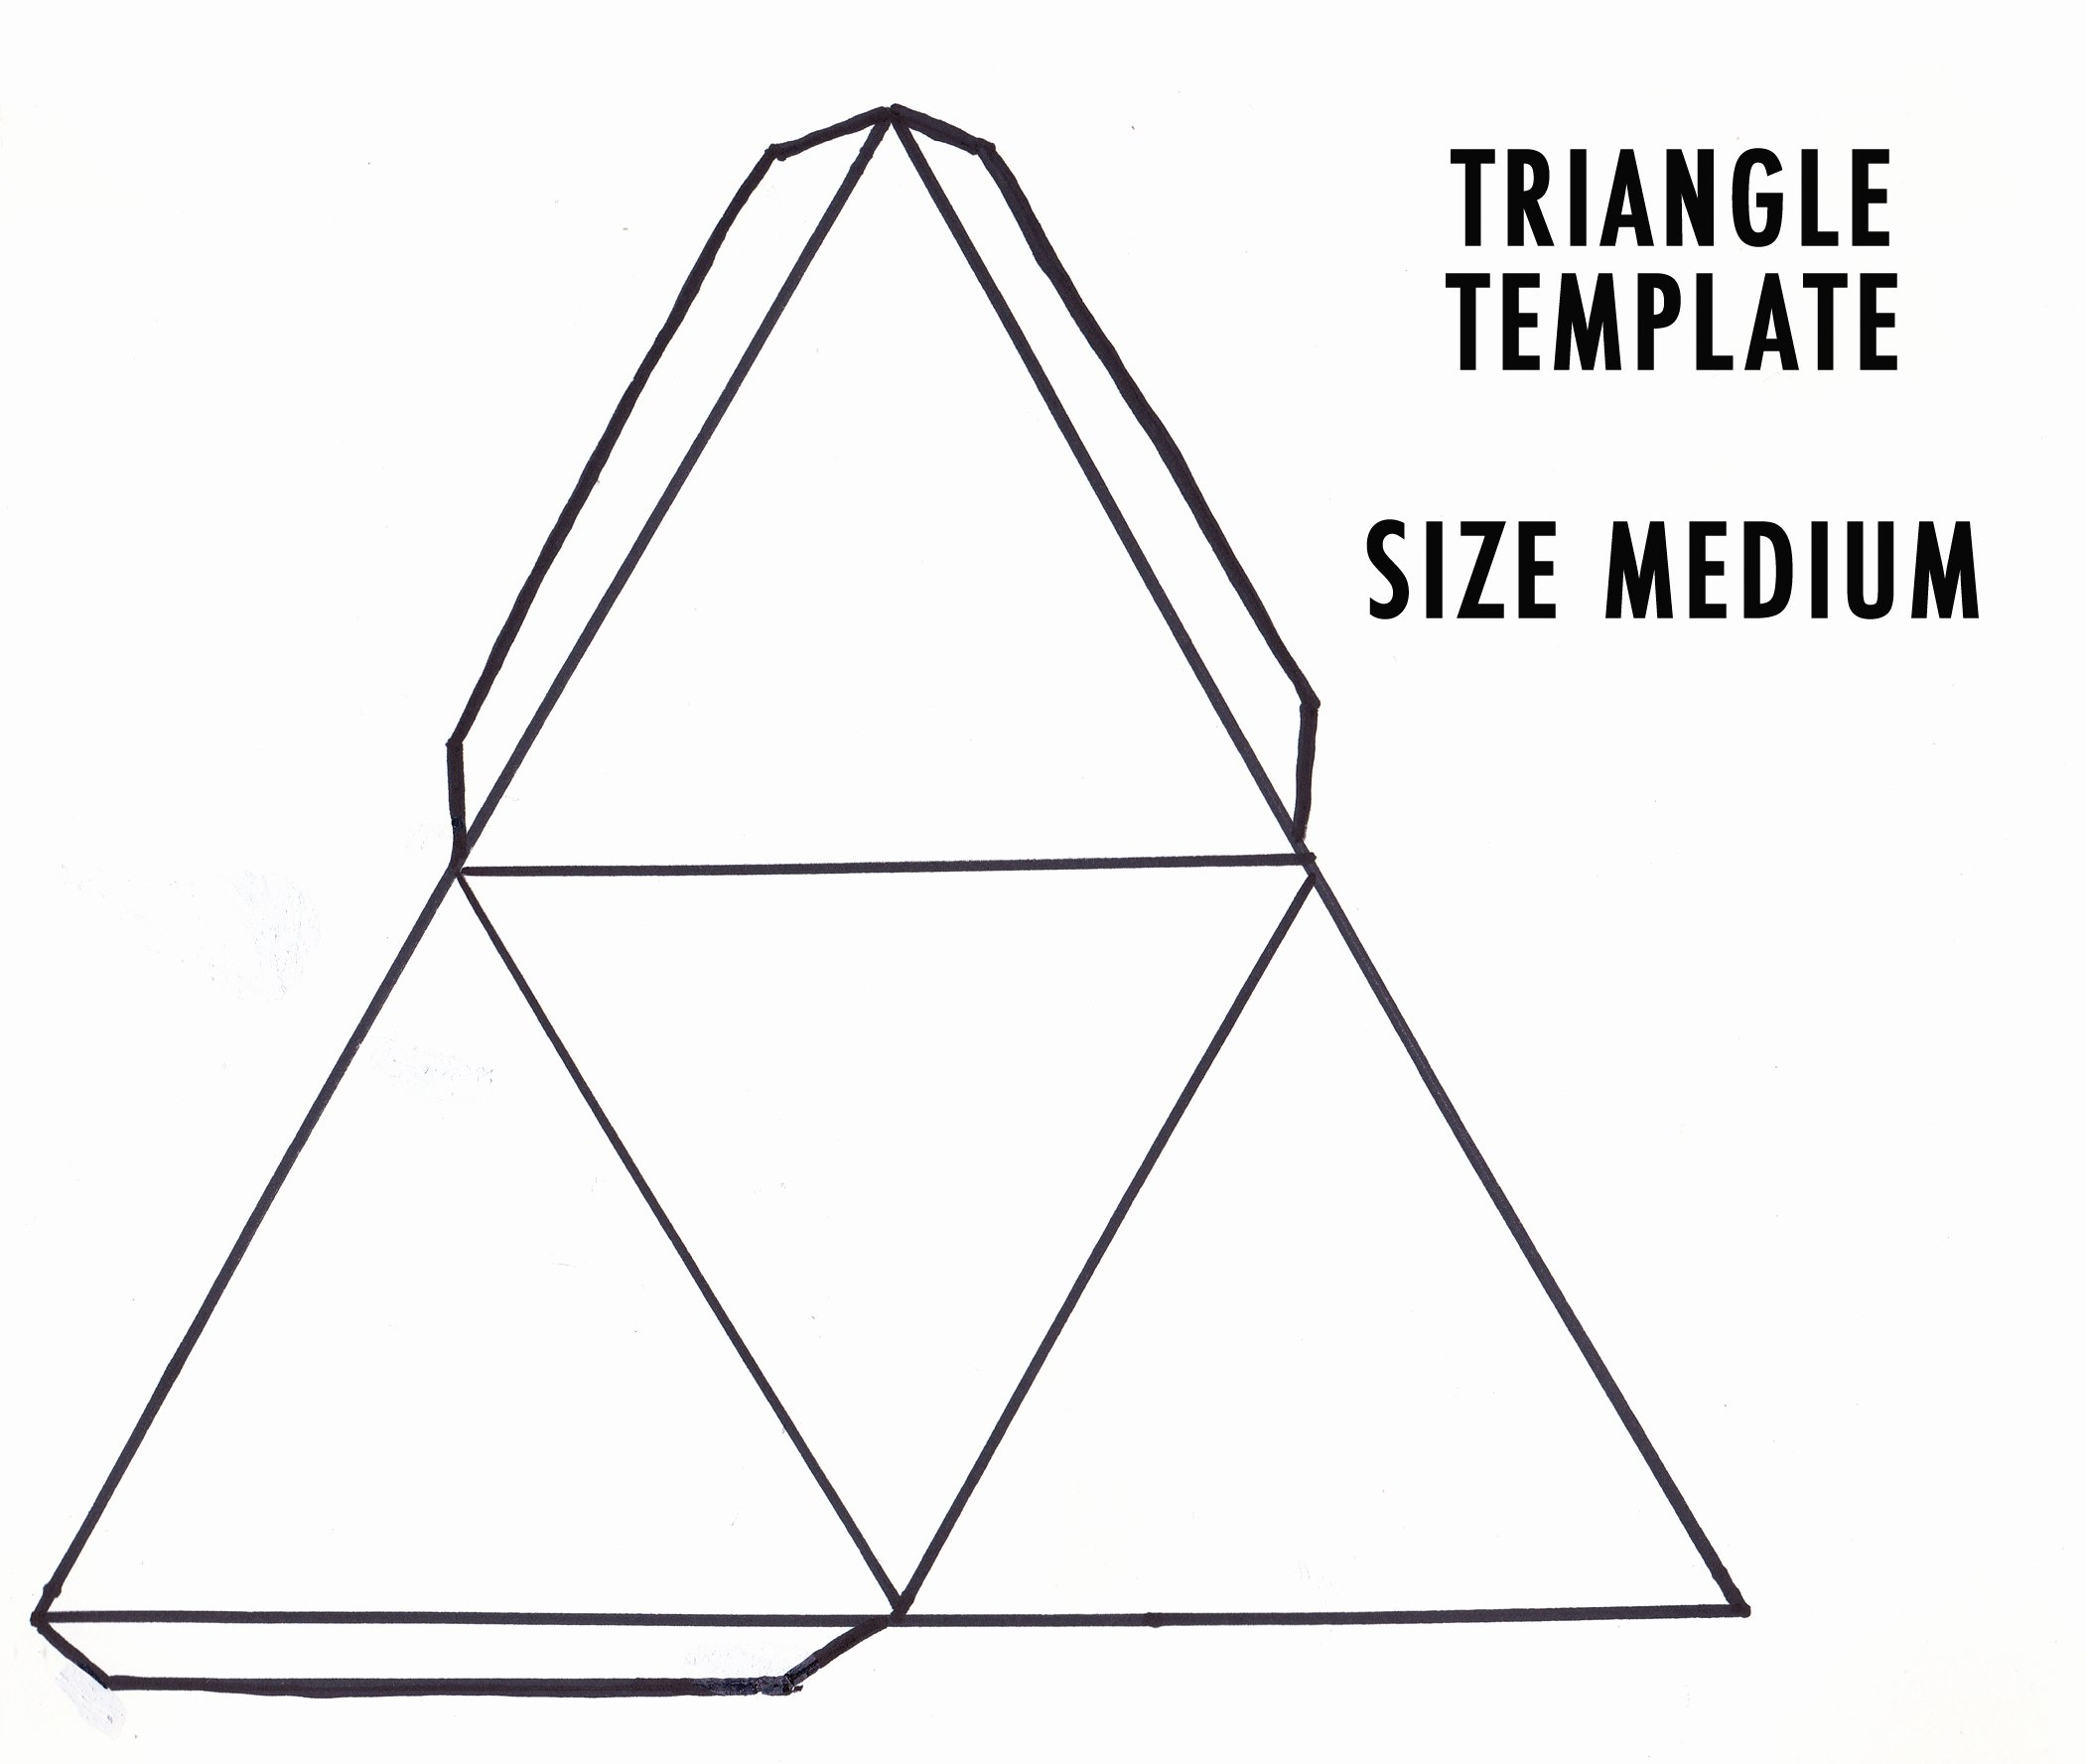 Triangle Foldable Template New Diy 3d Geometric Paper Sculpture